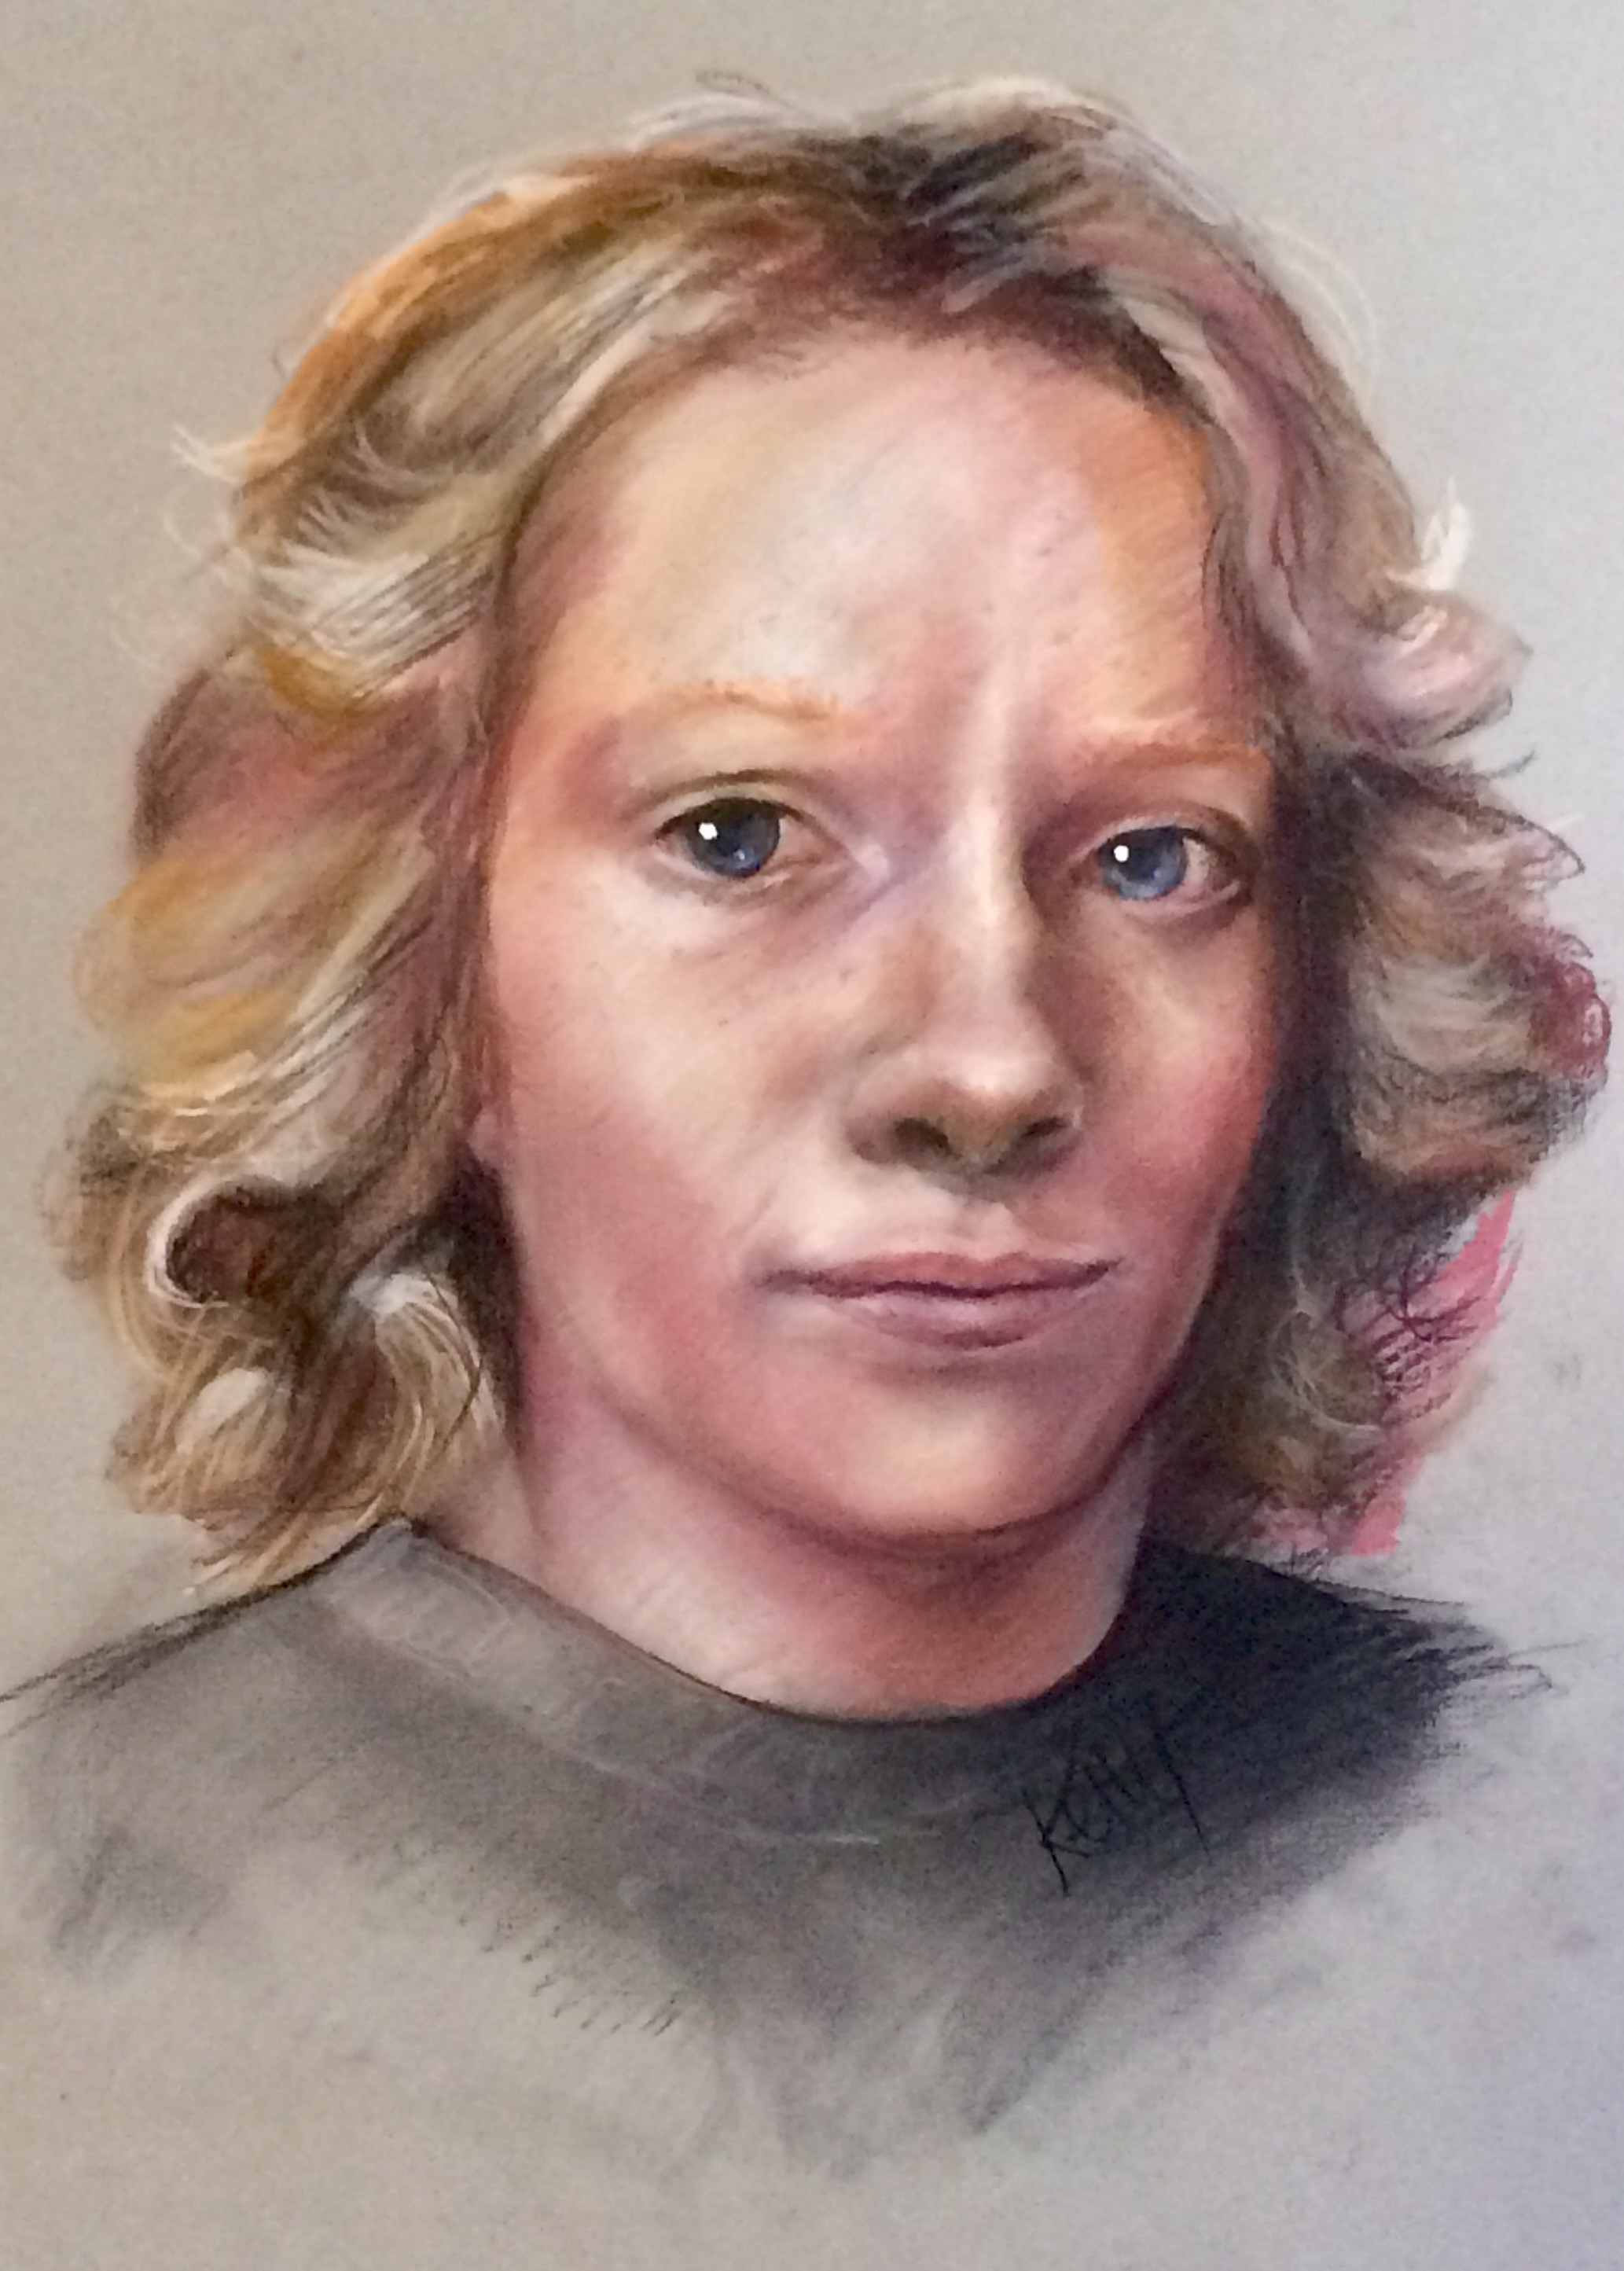 Unidentified Remains: Baker County - White Female